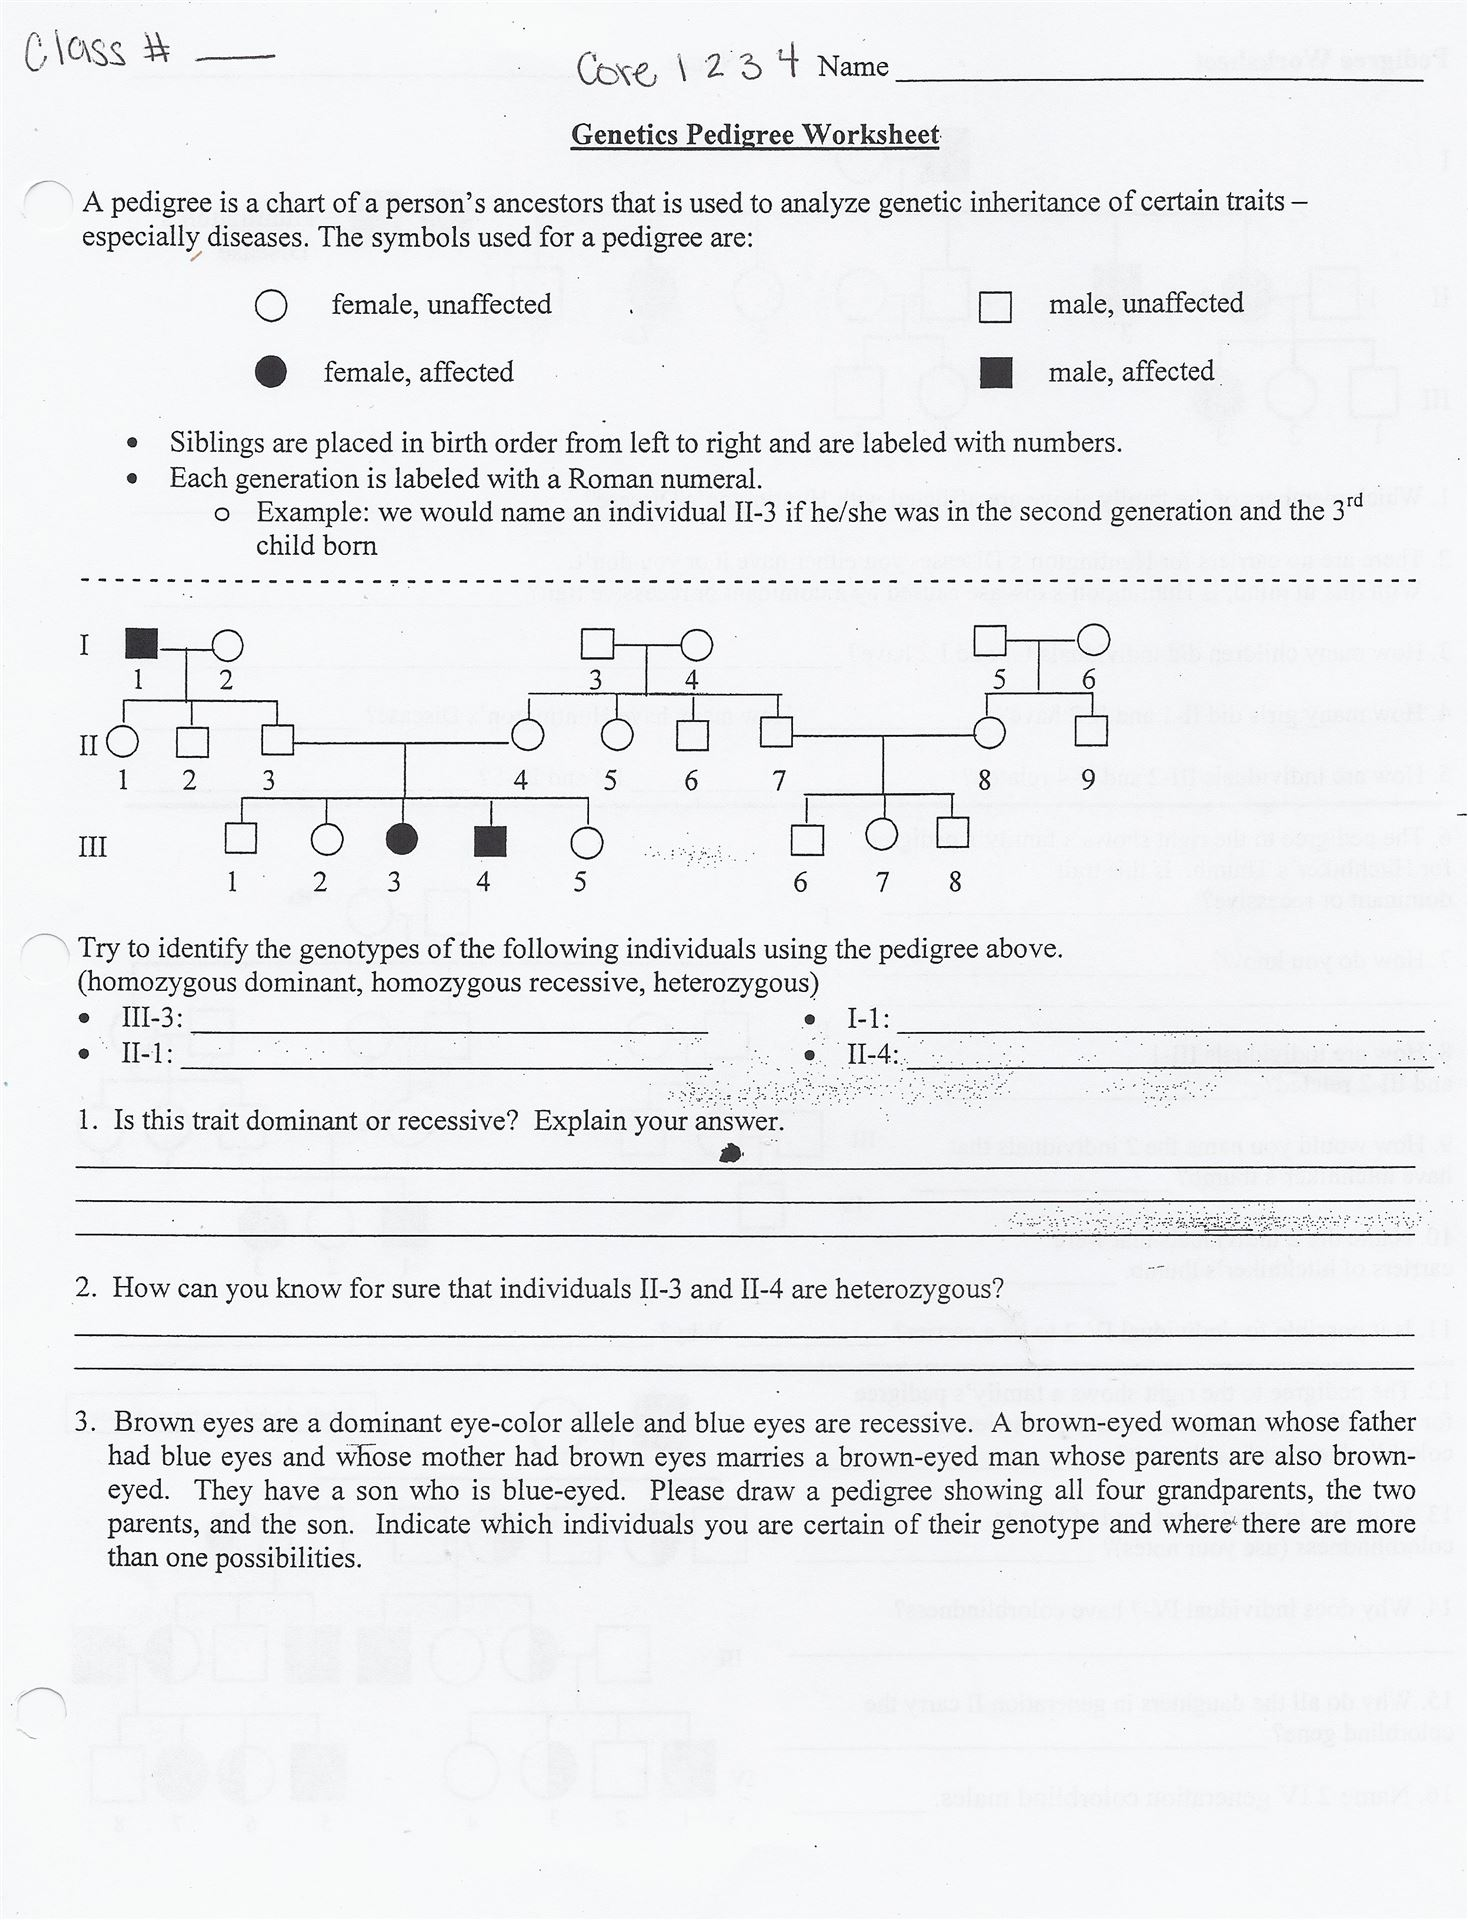 Free Worksheet Genetics Worksheet human pedigree genetics worksheet workbook site jpeg 328kb answer key biology worksheet